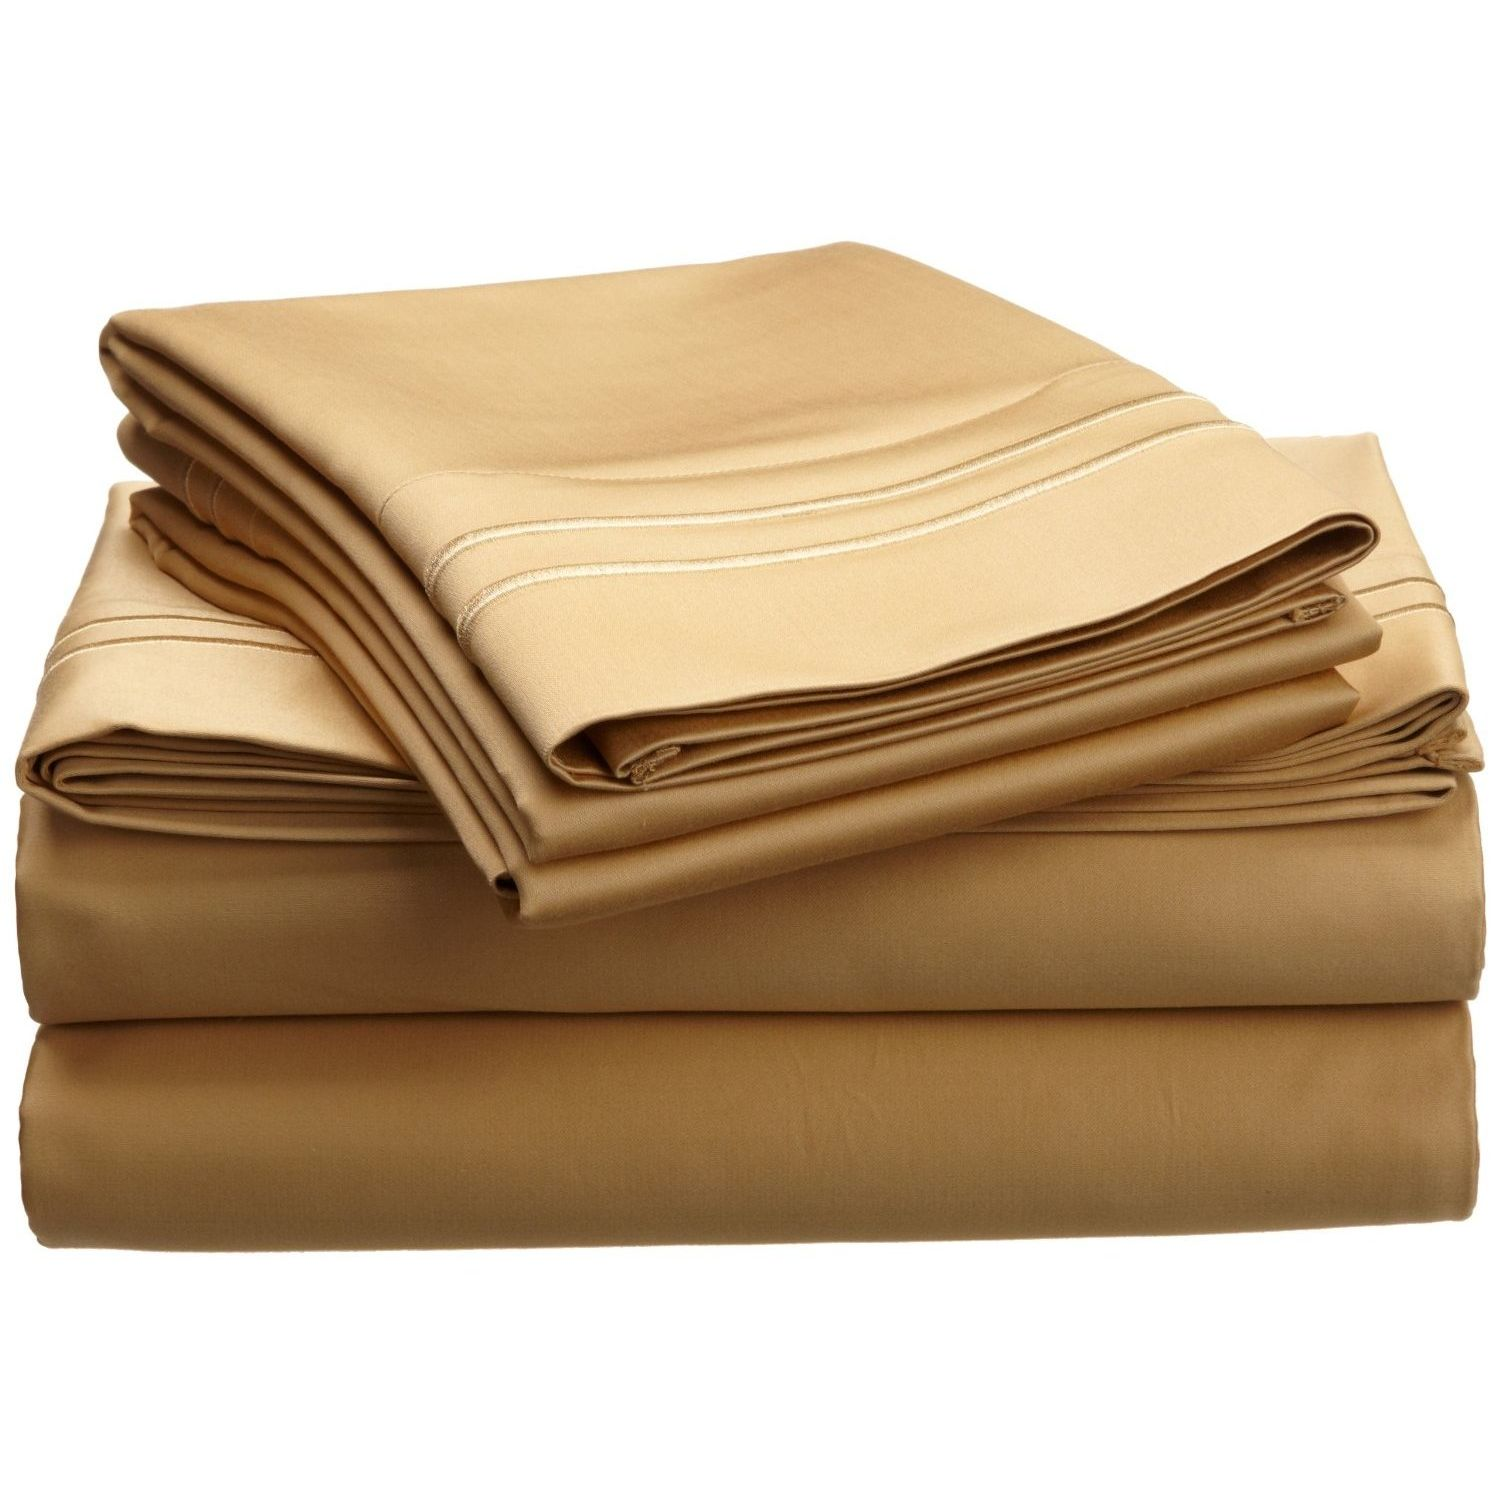 Superior 800 Thread Count Egyptian Cotton Solid Sheet Set With Embroidery